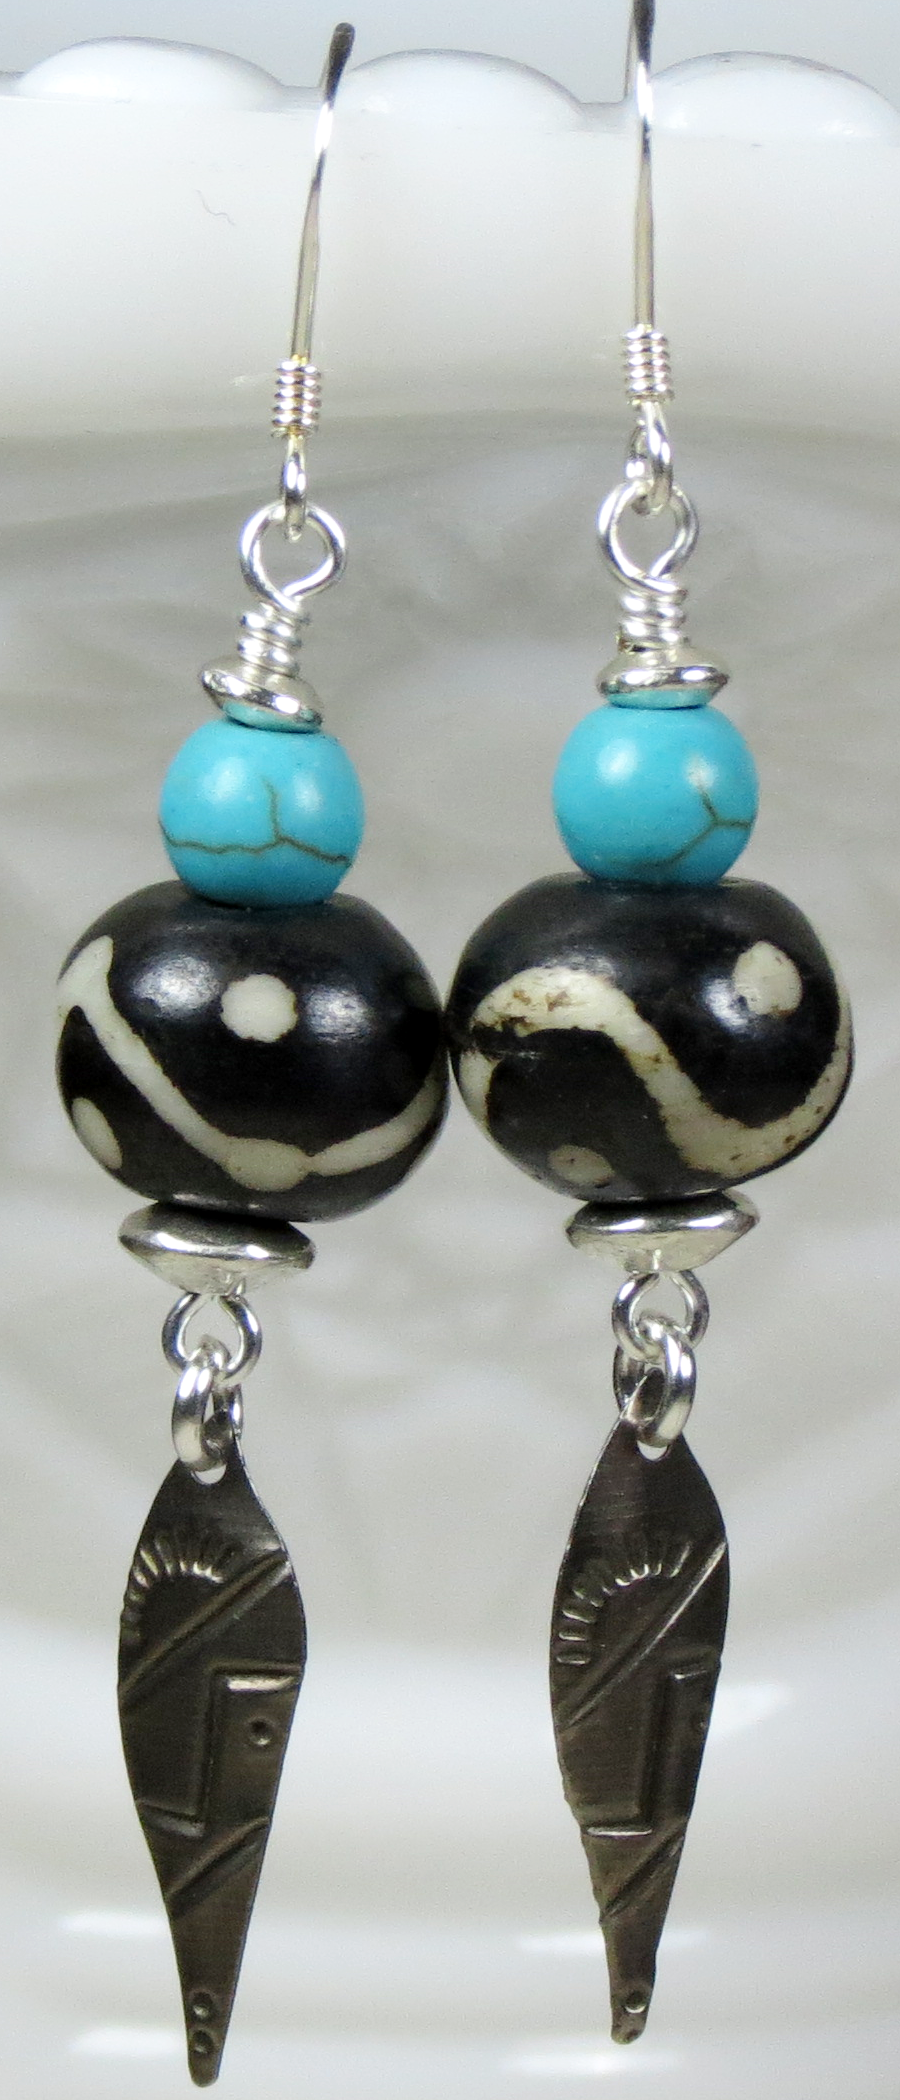 ca66df87d Black, White and, Turquoise Stone Beaded, Long Dangle Earrings, Sterling  Silver Earring Wire, Bohemian Ethnic Tribal inspired Jewelry.